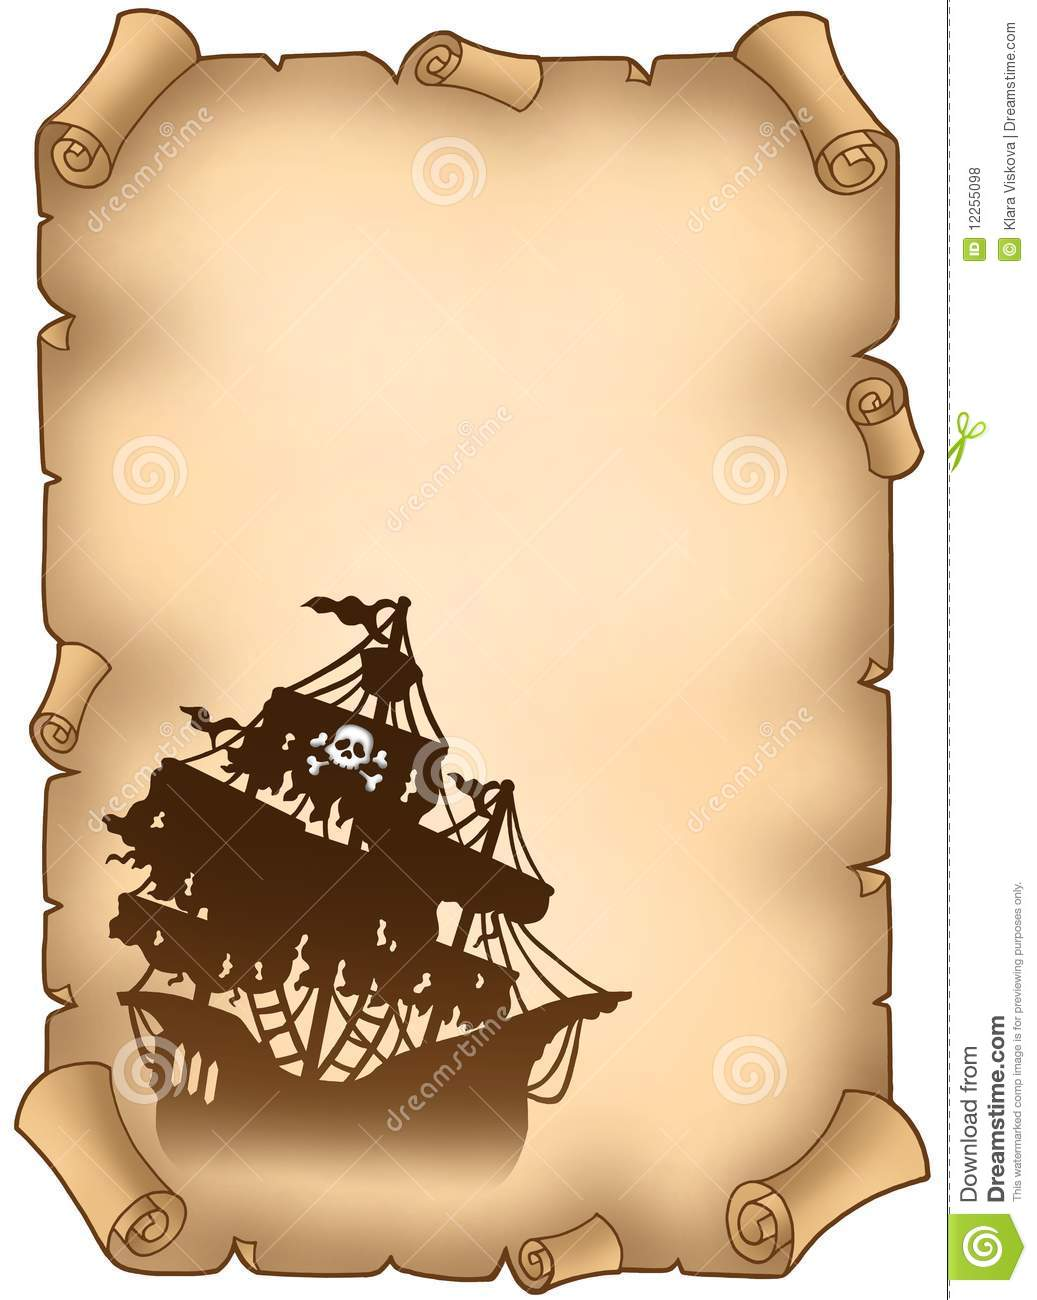 pirate scroll template - old scroll with mysterious pirate ship stock illustration